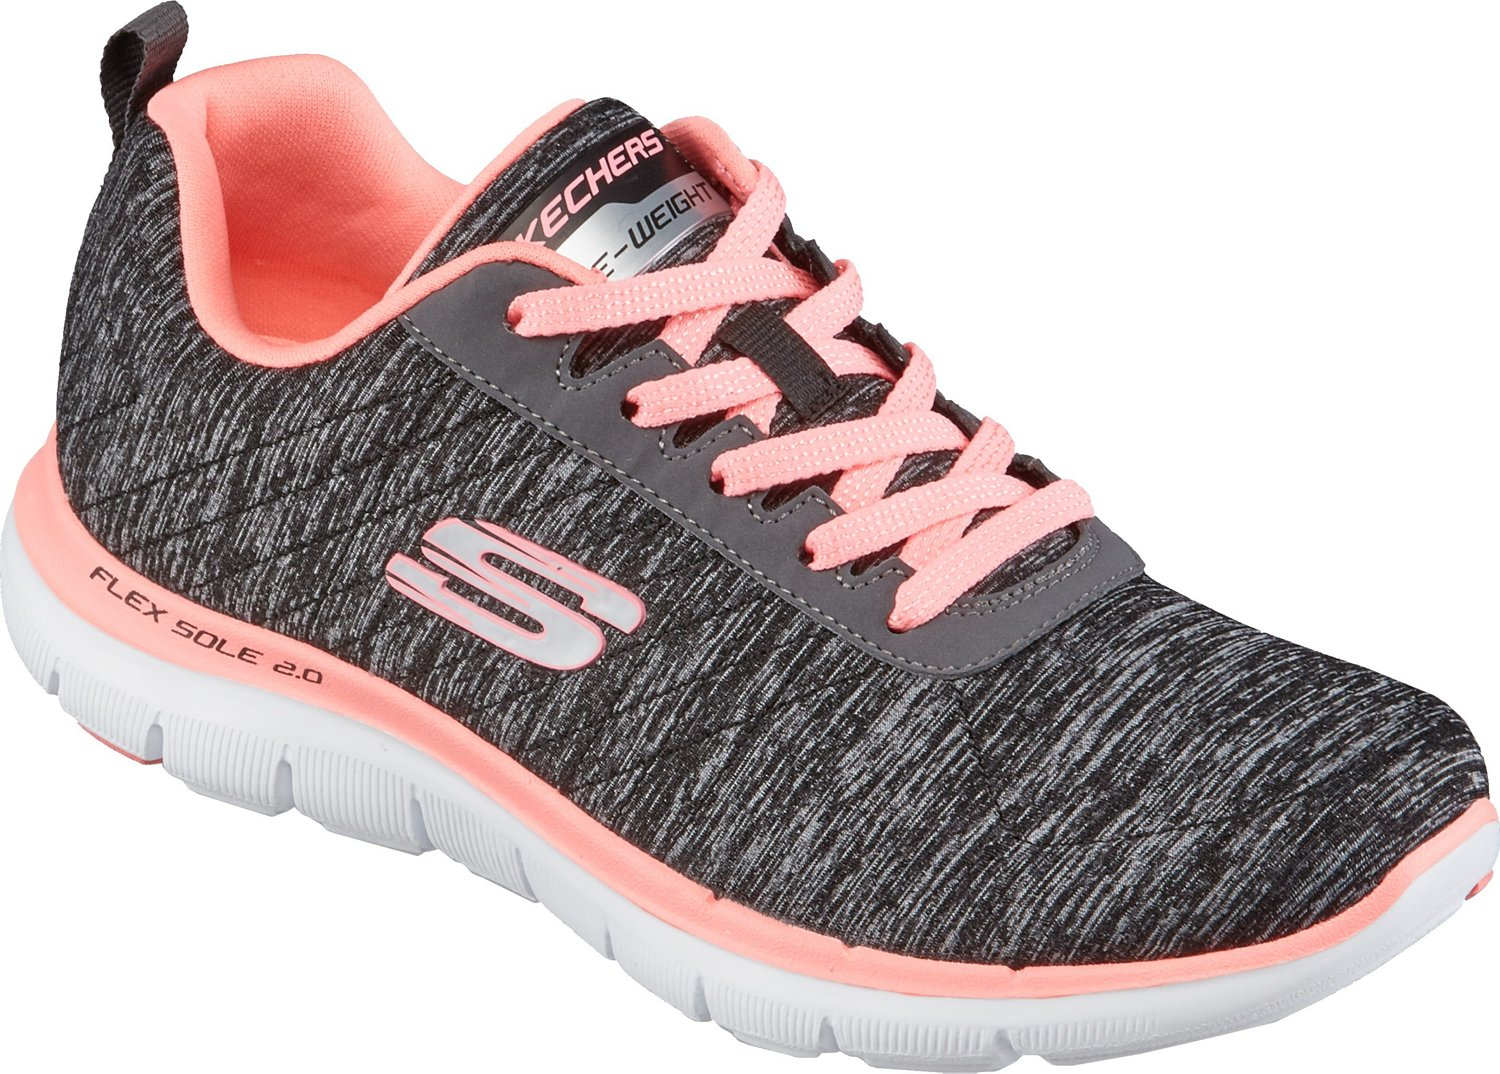 competitive price 746ca 333e6 Display product reviews for SKECHERS Women s Flex Appeal 2.0 Training Shoes